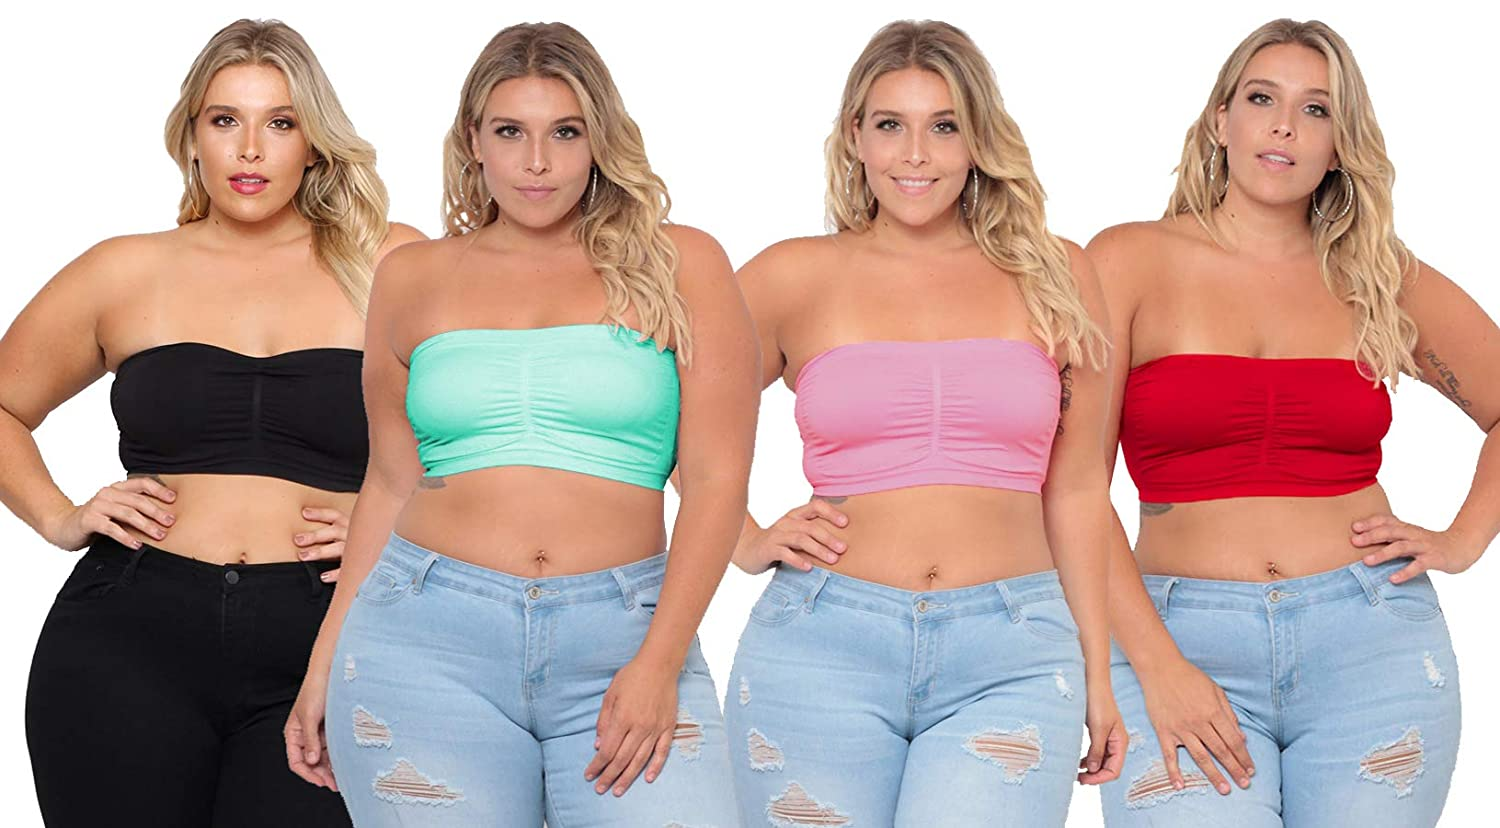 1e9bdcbb135d1 Dinamit Jeans Plus Size Tube Top Strapless Seamless Bandeau Bra (with  Removable Padded) Sold in 2 or 4 Pack at Amazon Women s Clothing store